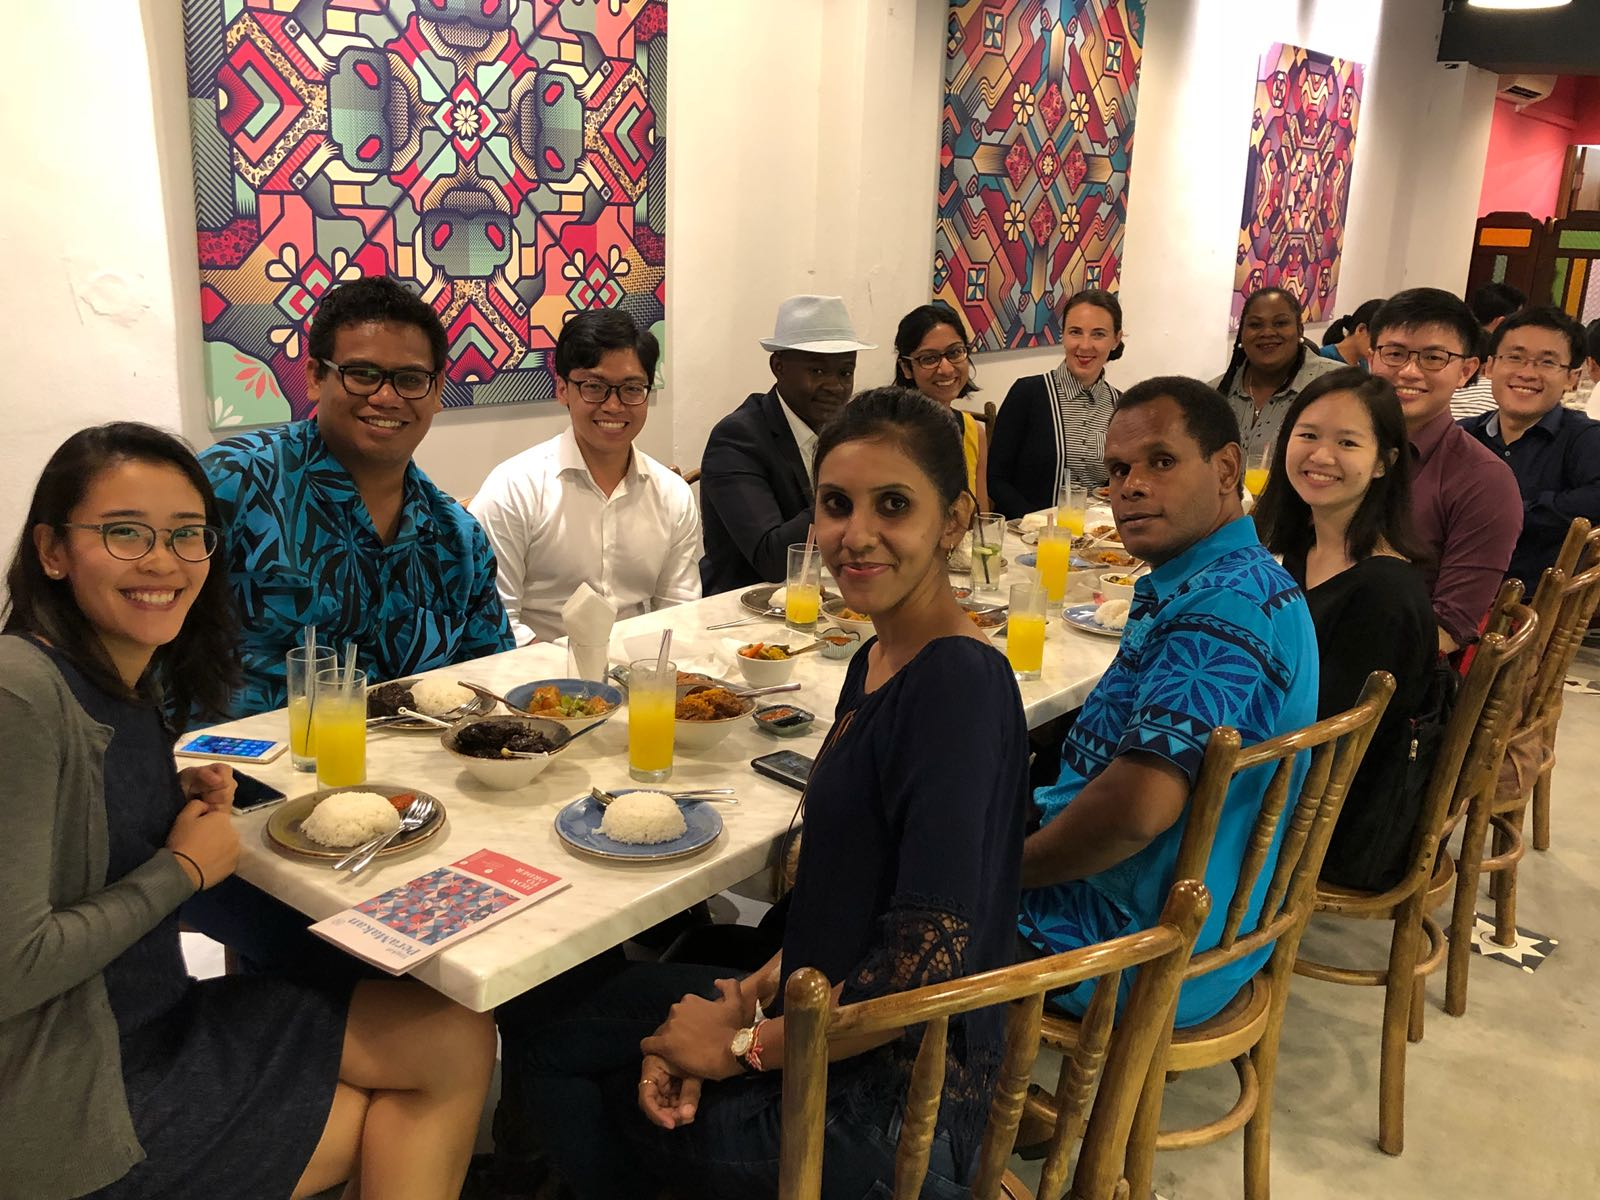 PFD 2018 participants having fun and enjoying Peranakan cuisine with Singapore MFA colleagues from the International Organisations Directorate and the Australia/New Zealand and The Pacific Directorate during the social night out on 10 May 2018